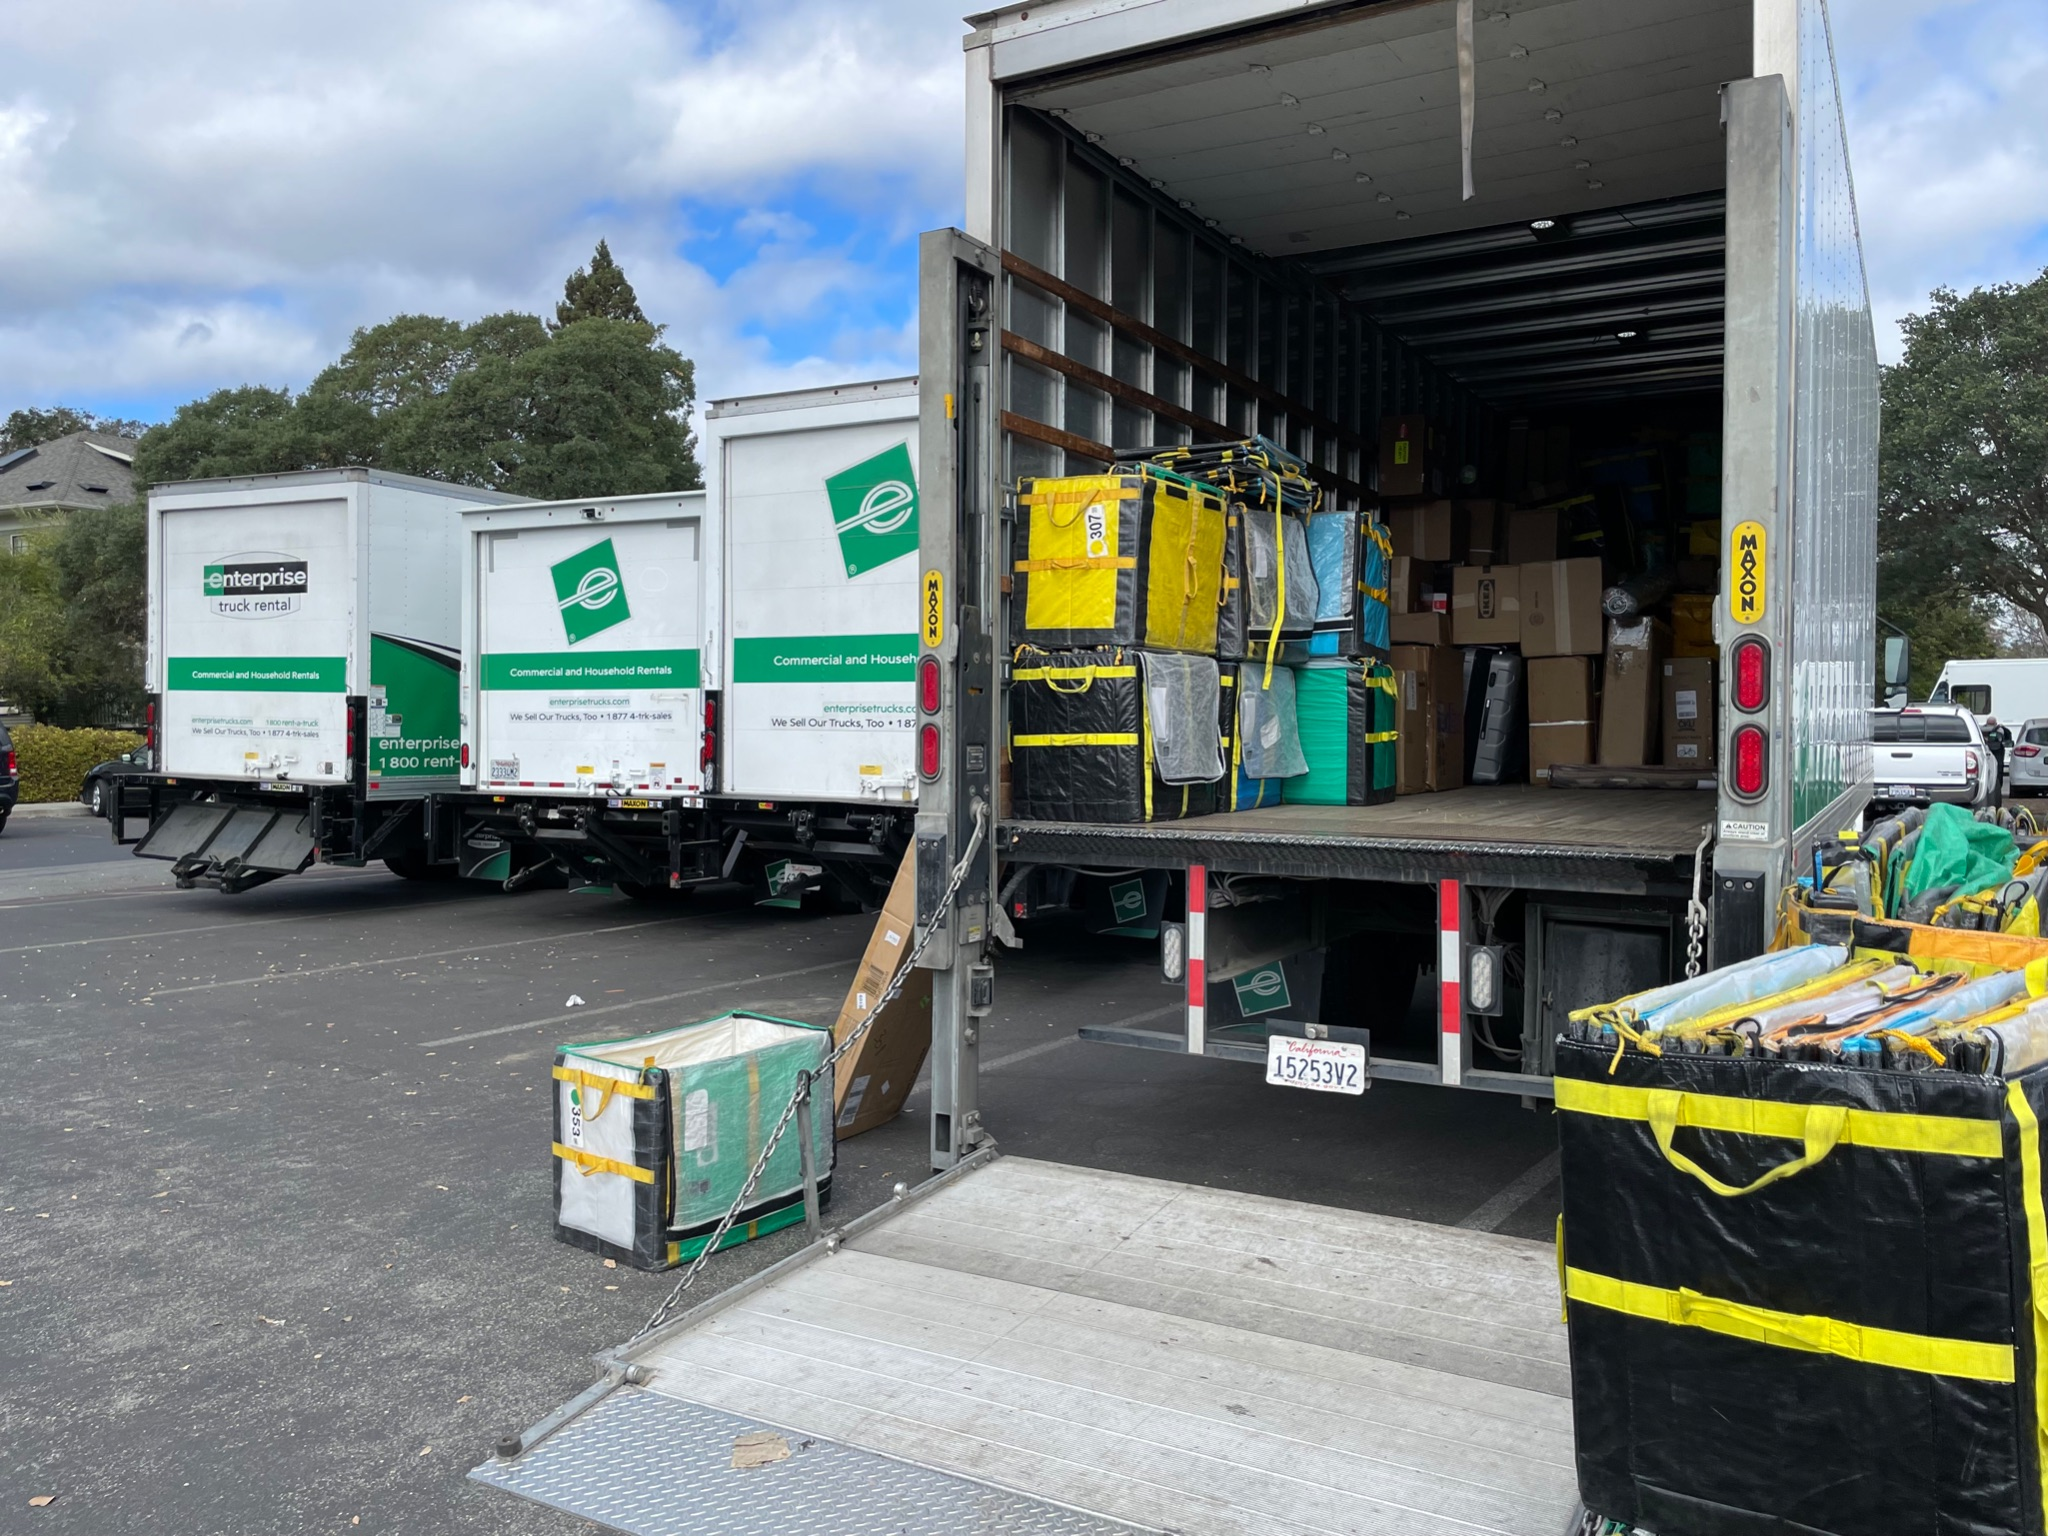 Open enterprise truck with packages stored inside